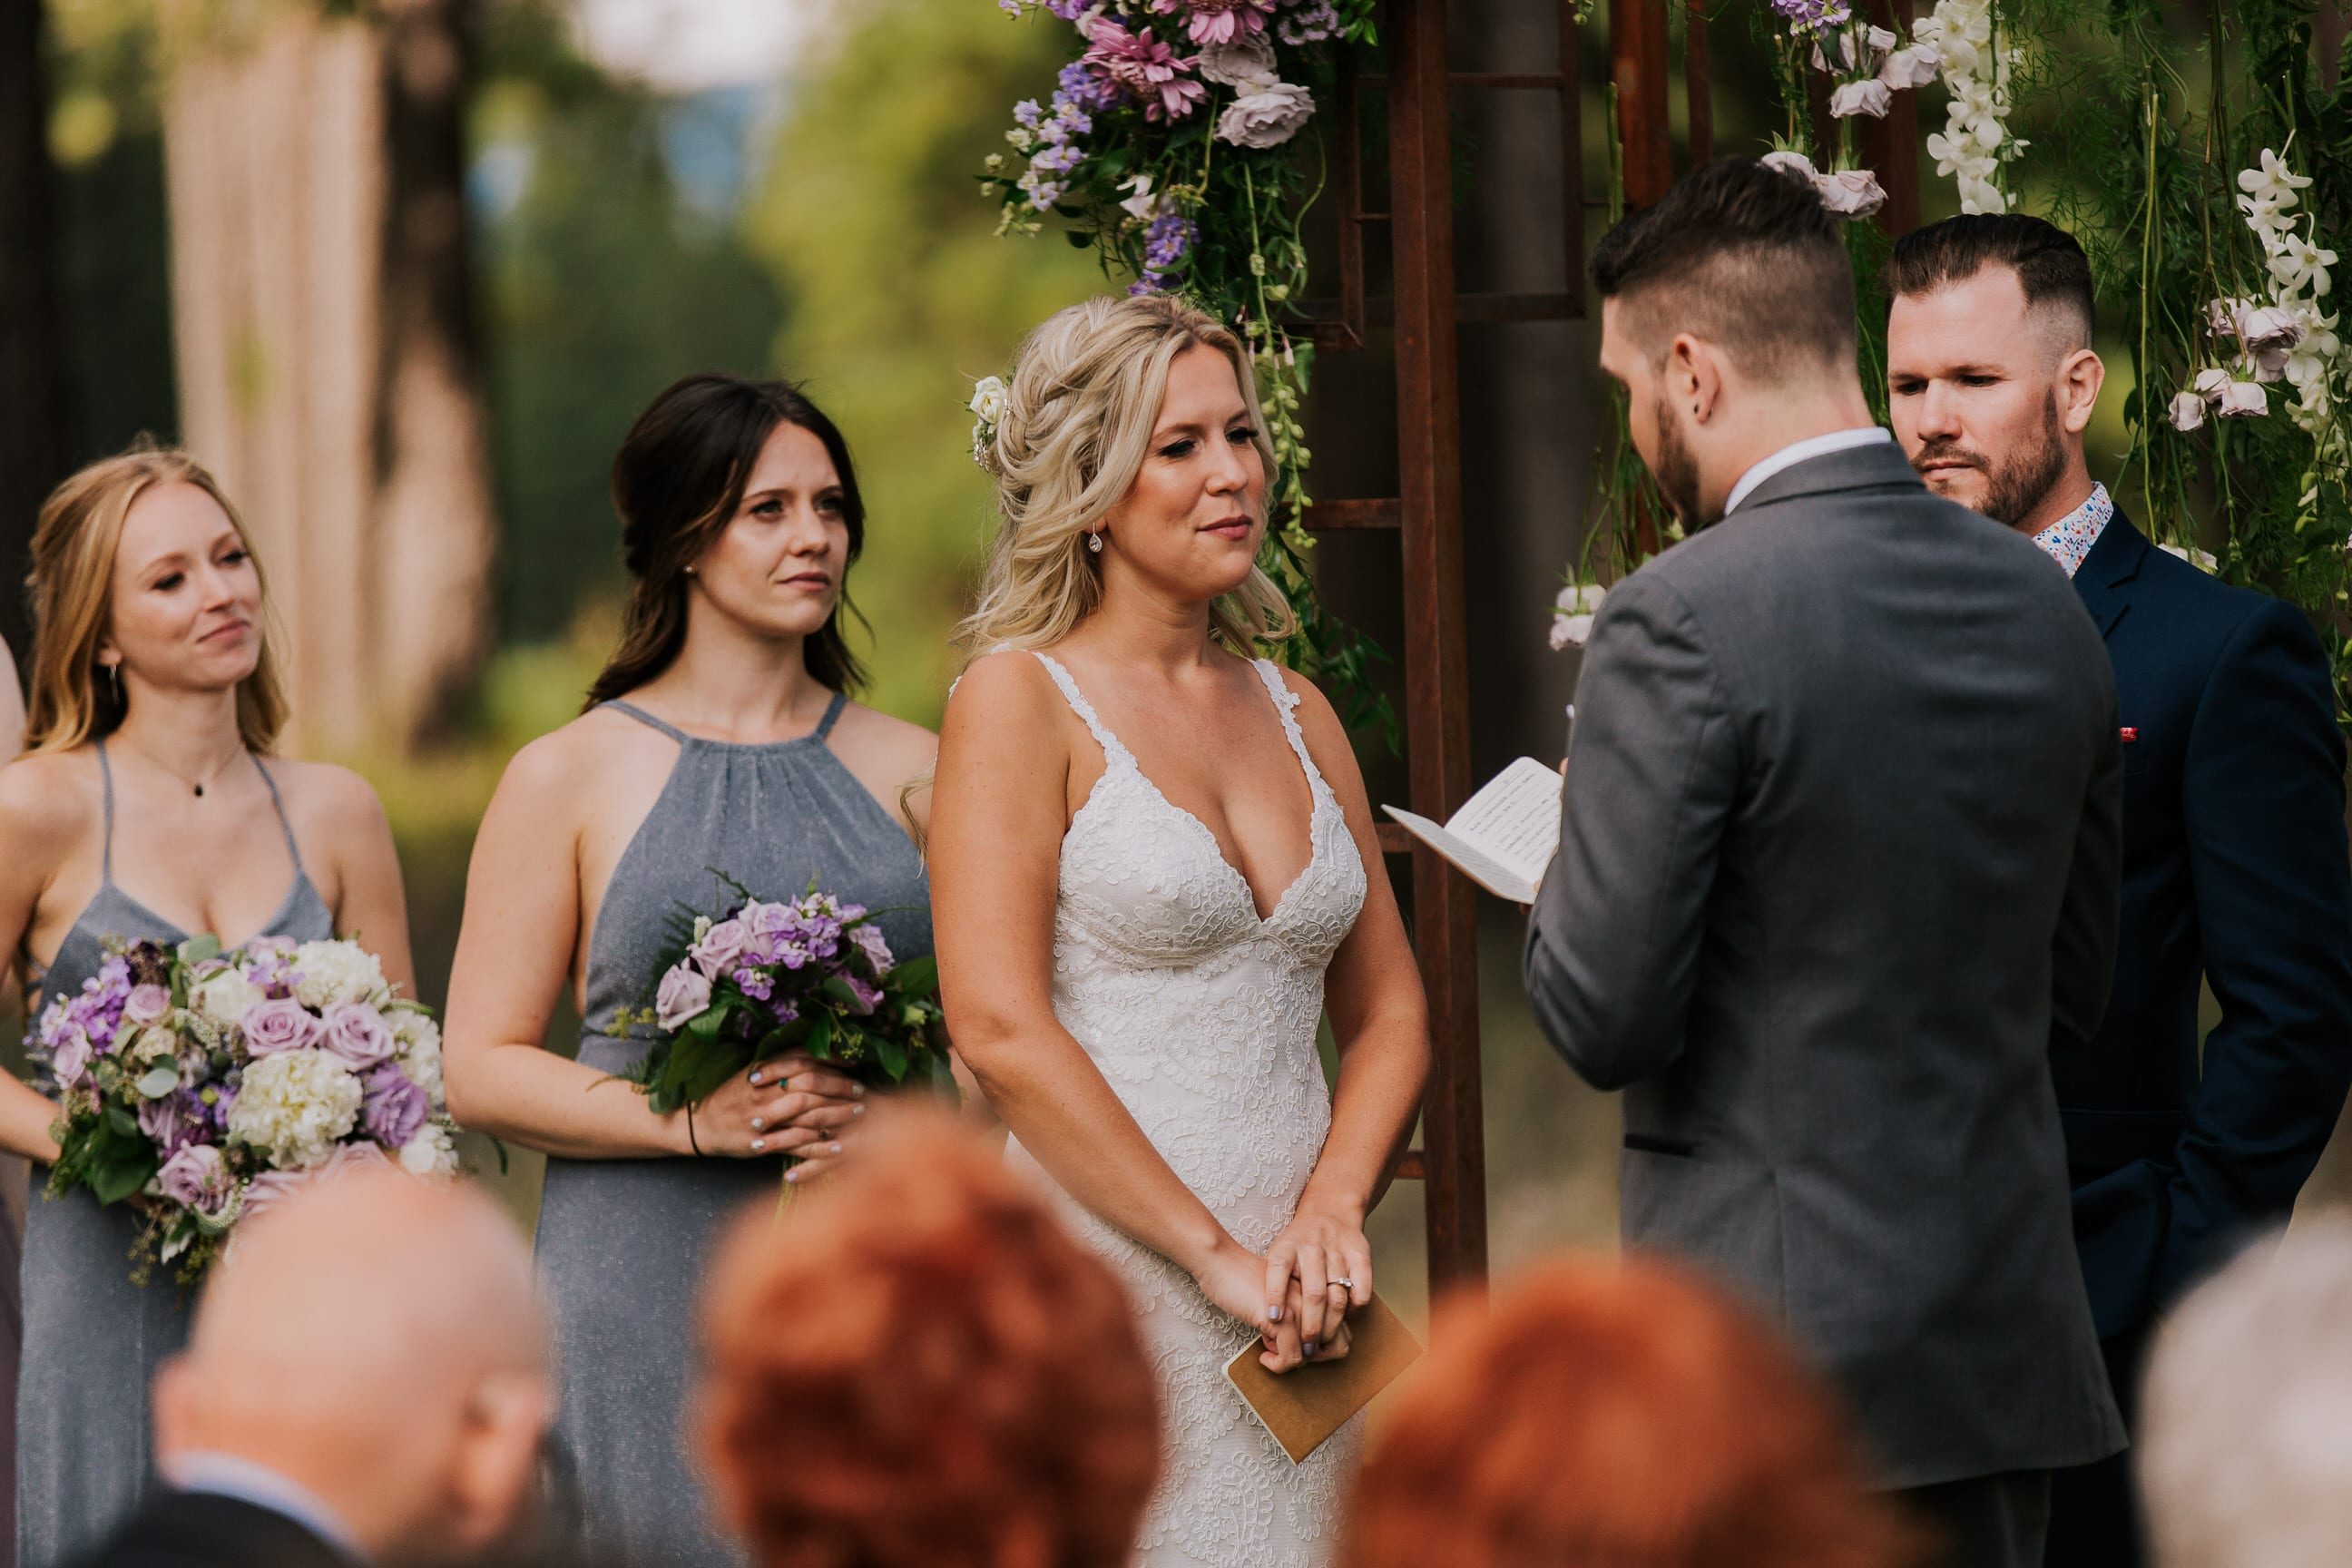 groom reads vows to bride in wedding ceremony